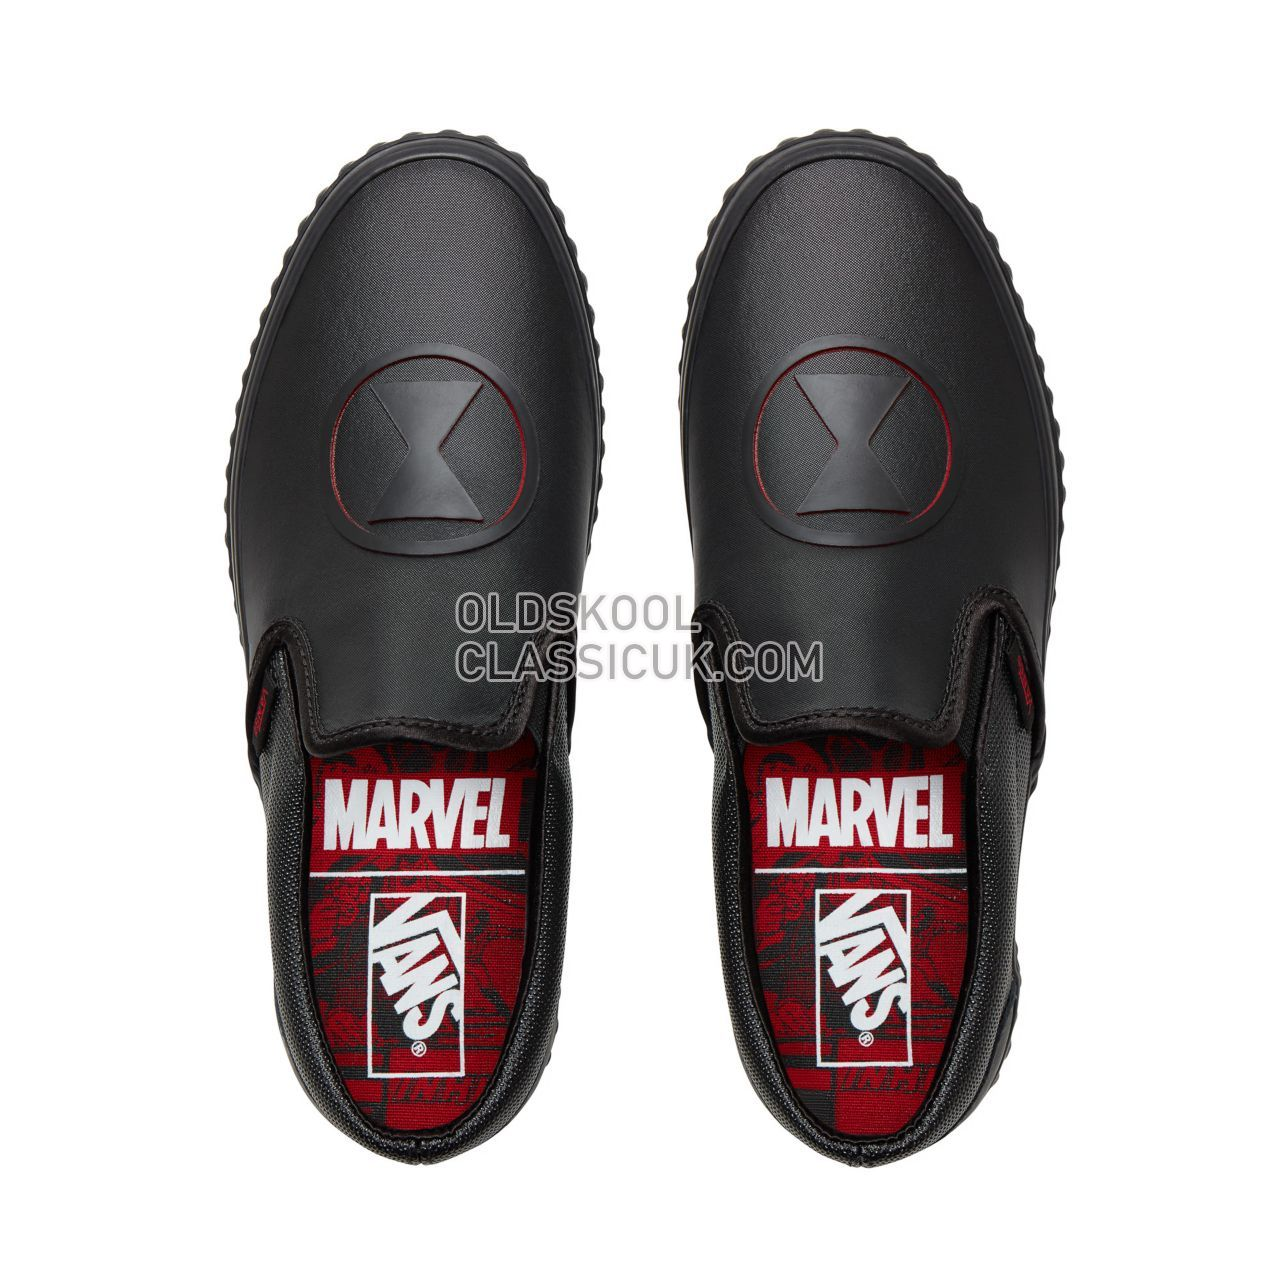 Vans X Marvel Classic Slip-On Sneakers Womens (Marvel) Black Widow/Black VA38F7U7K Shoes